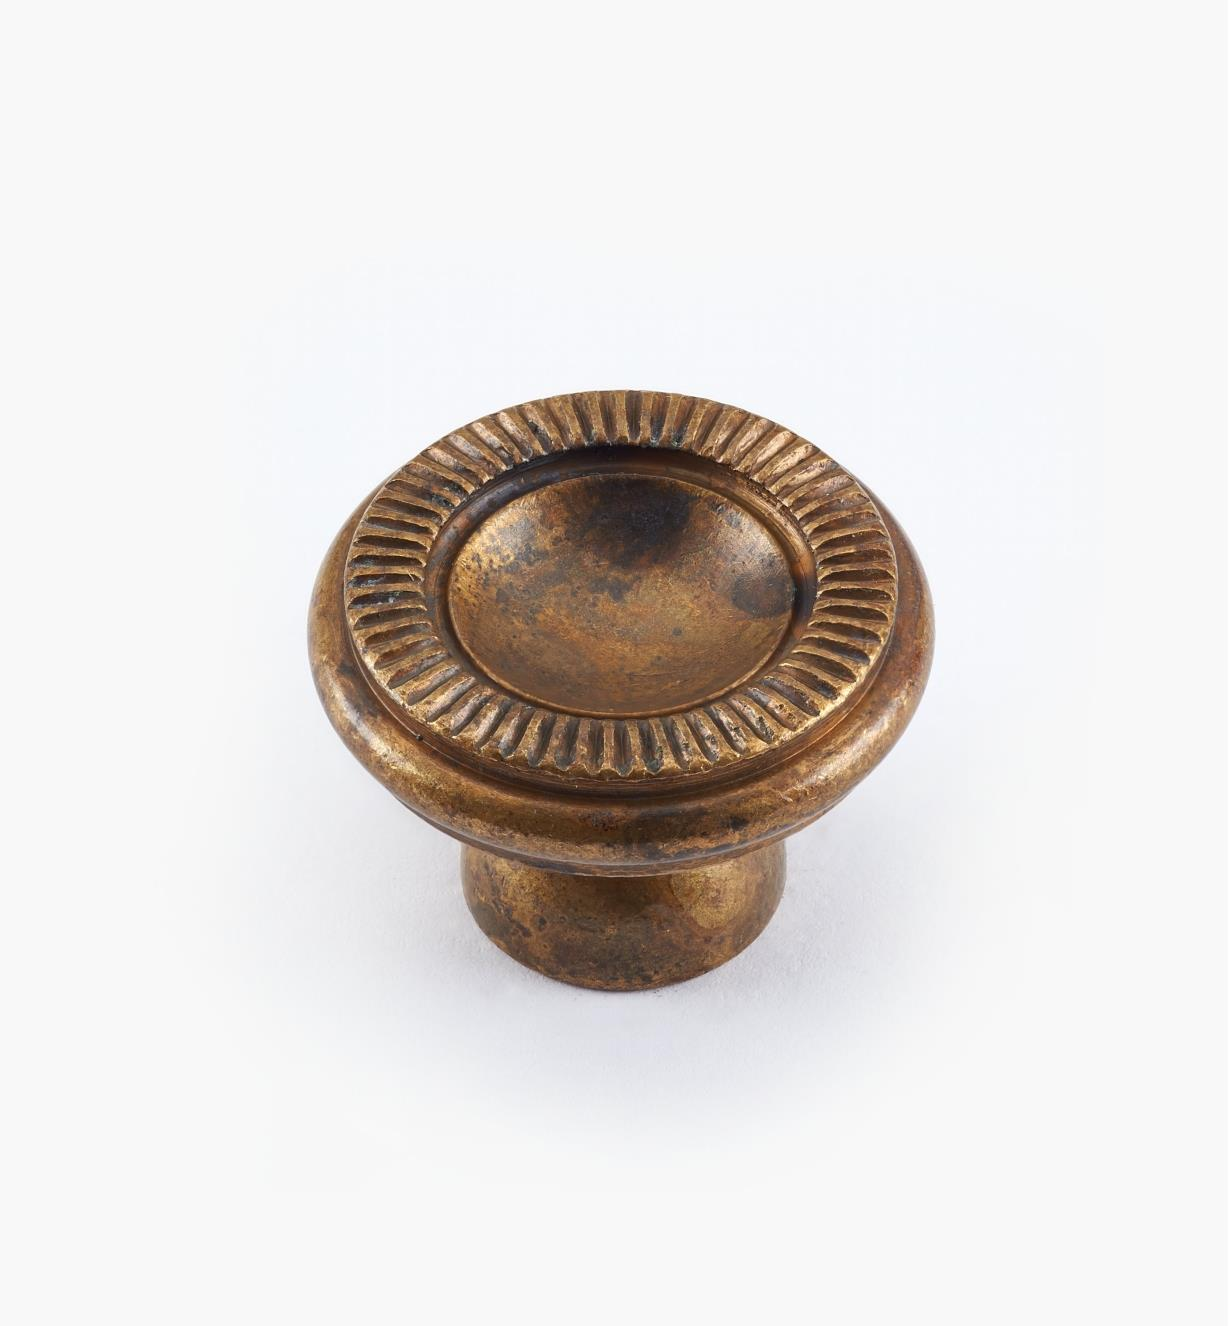 01A0811 - 25mm x 17mm Old Brass Knob